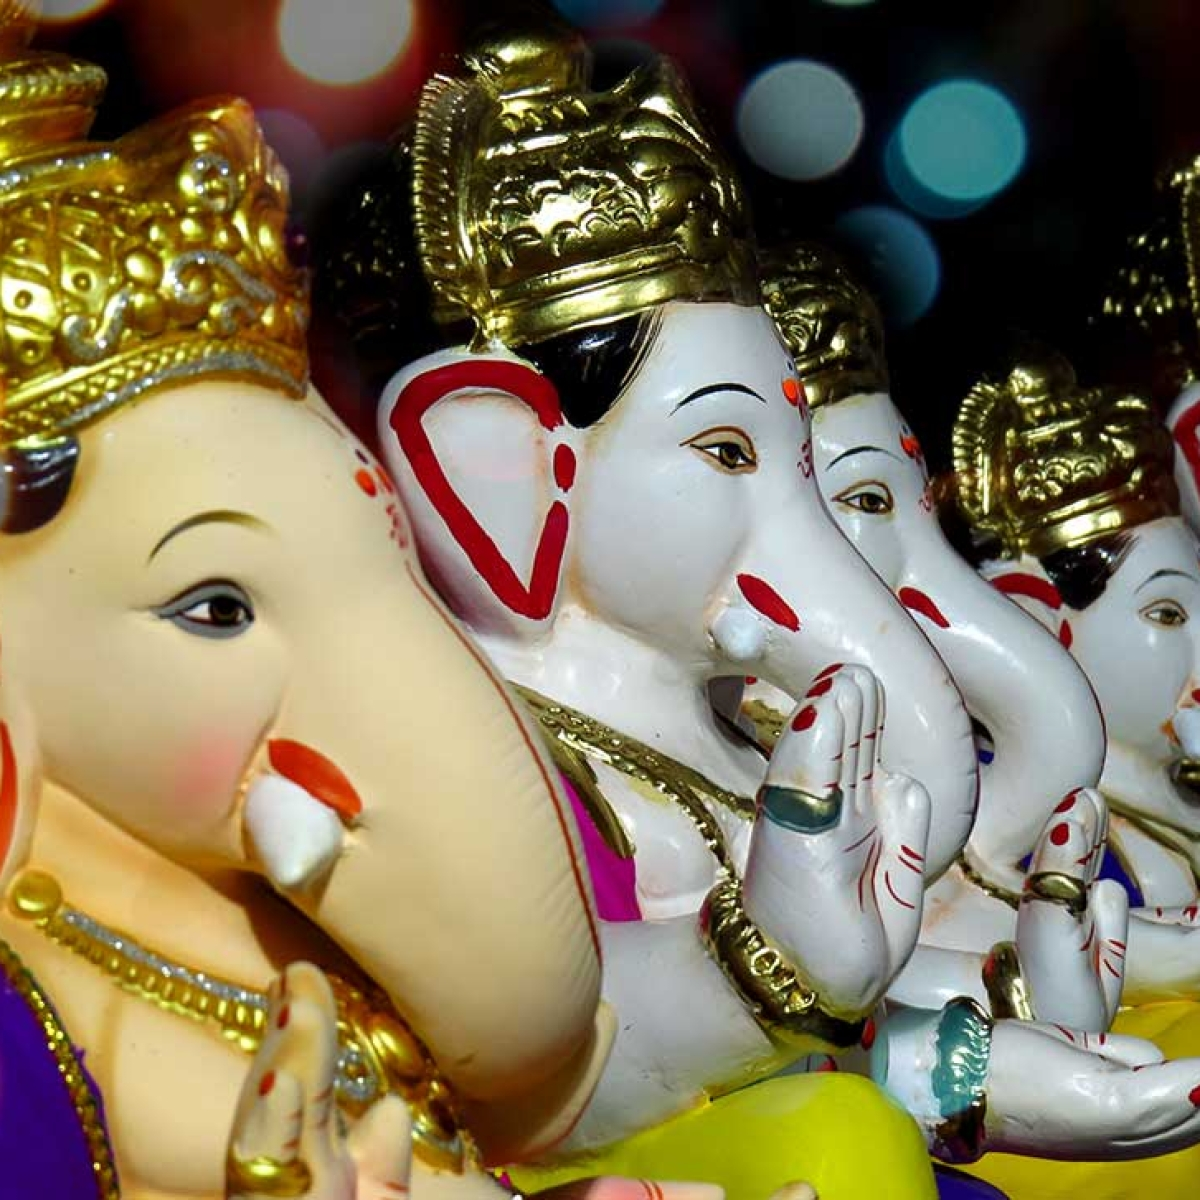 Maha issues guidelines for mandals, low key Ganeshotsav